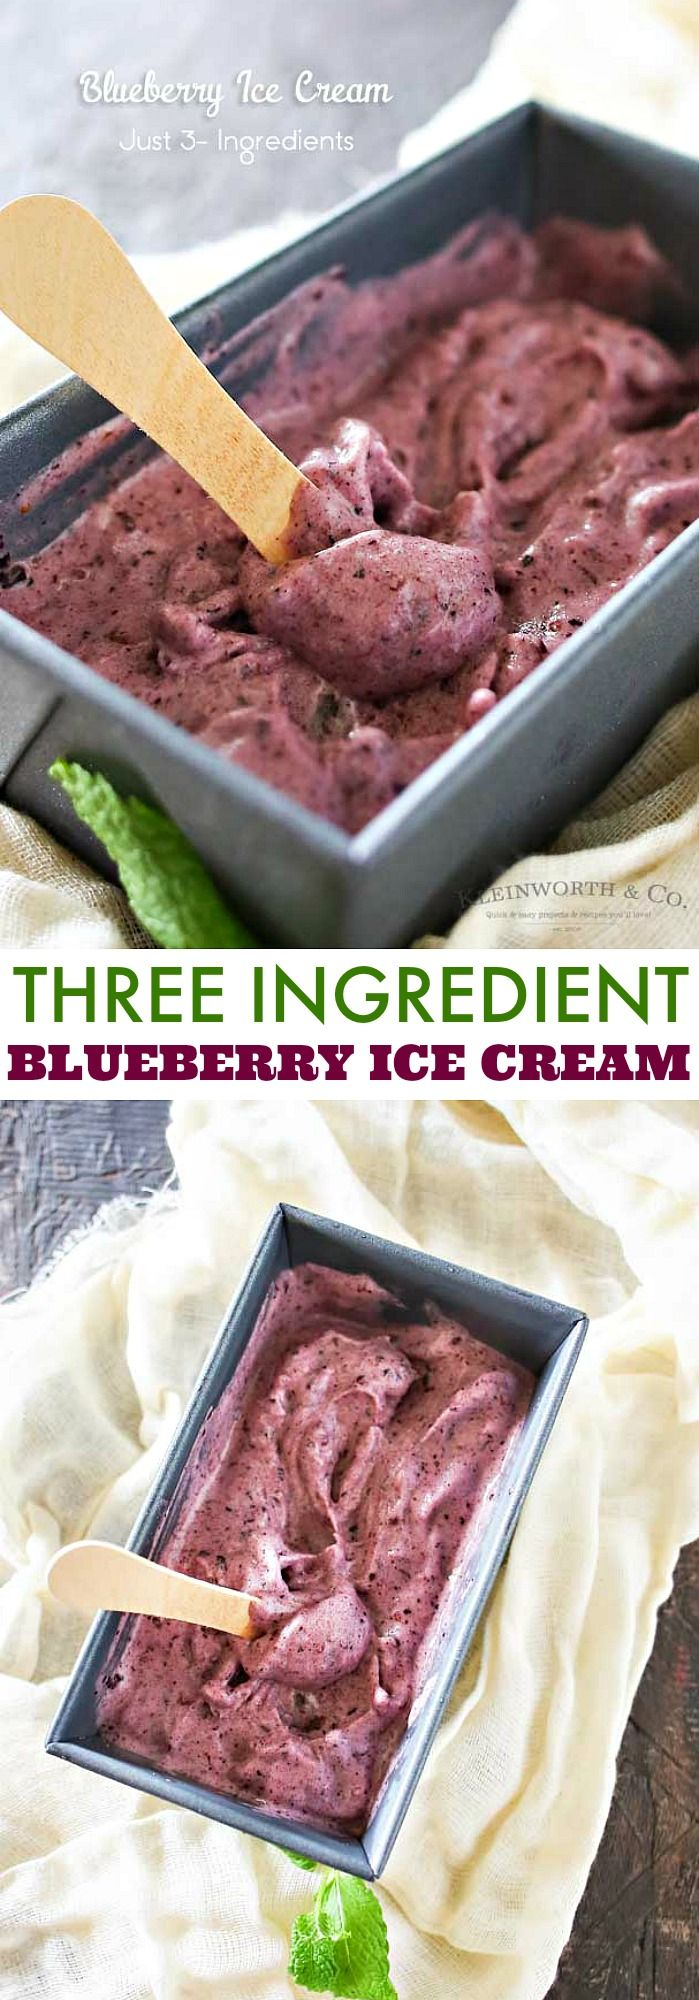 This Blueberry Ice Cream is a delicious dairy-free, 3-ingredient recipe with just fruits and honey. It takes just a couple minutes an a blender! It's a nutritious dessert that you won't feel guilty about!